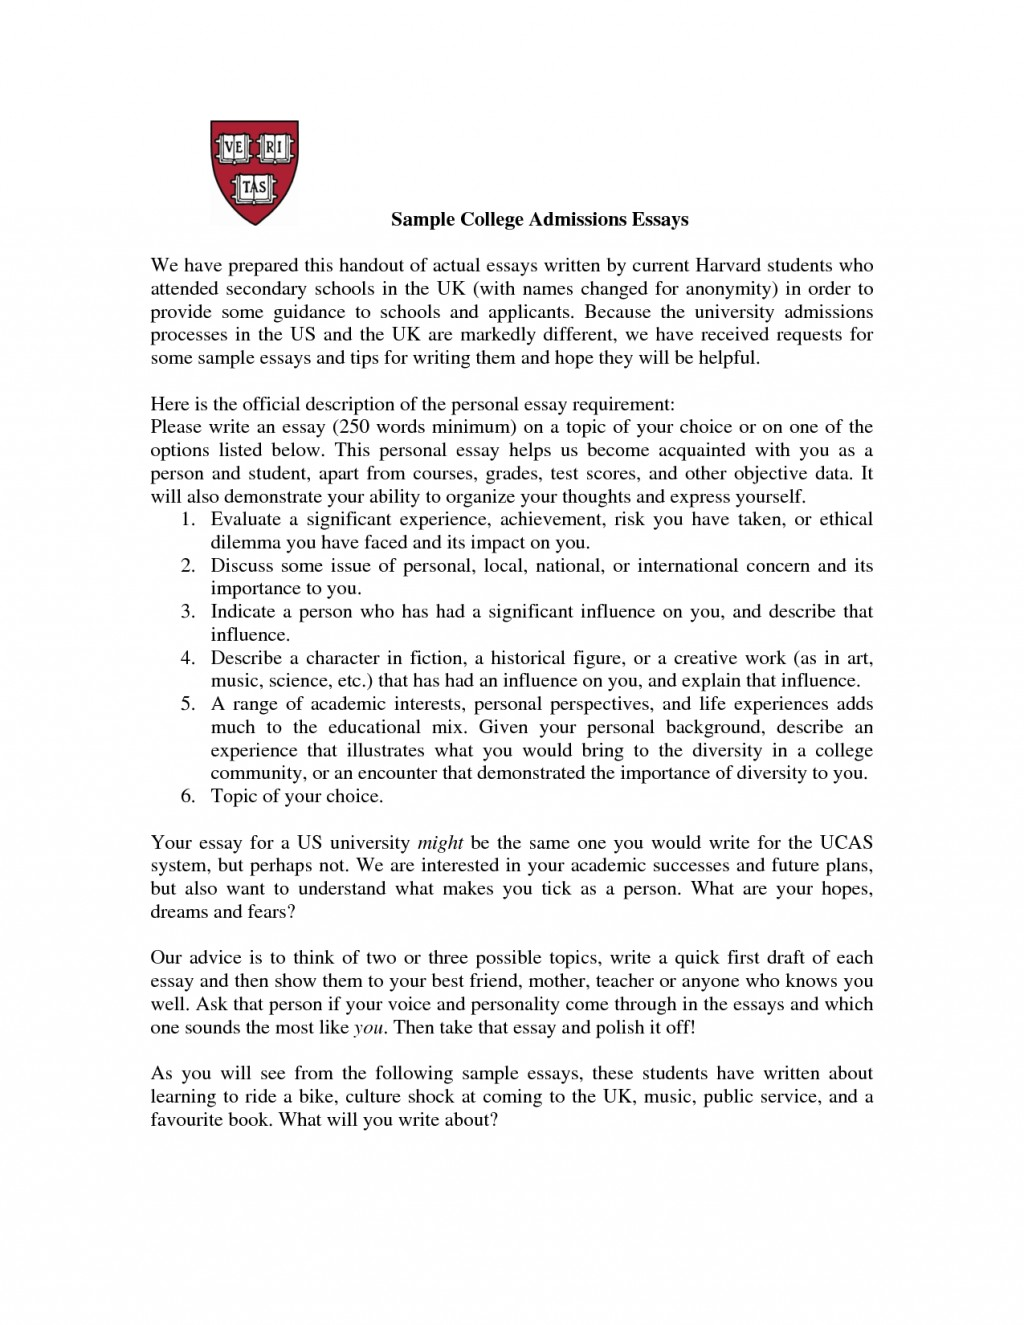 013 Dpy4cpaqnd Essay Example Common App Best Essays Application Examples Harvard Prompts 2014-15 Large